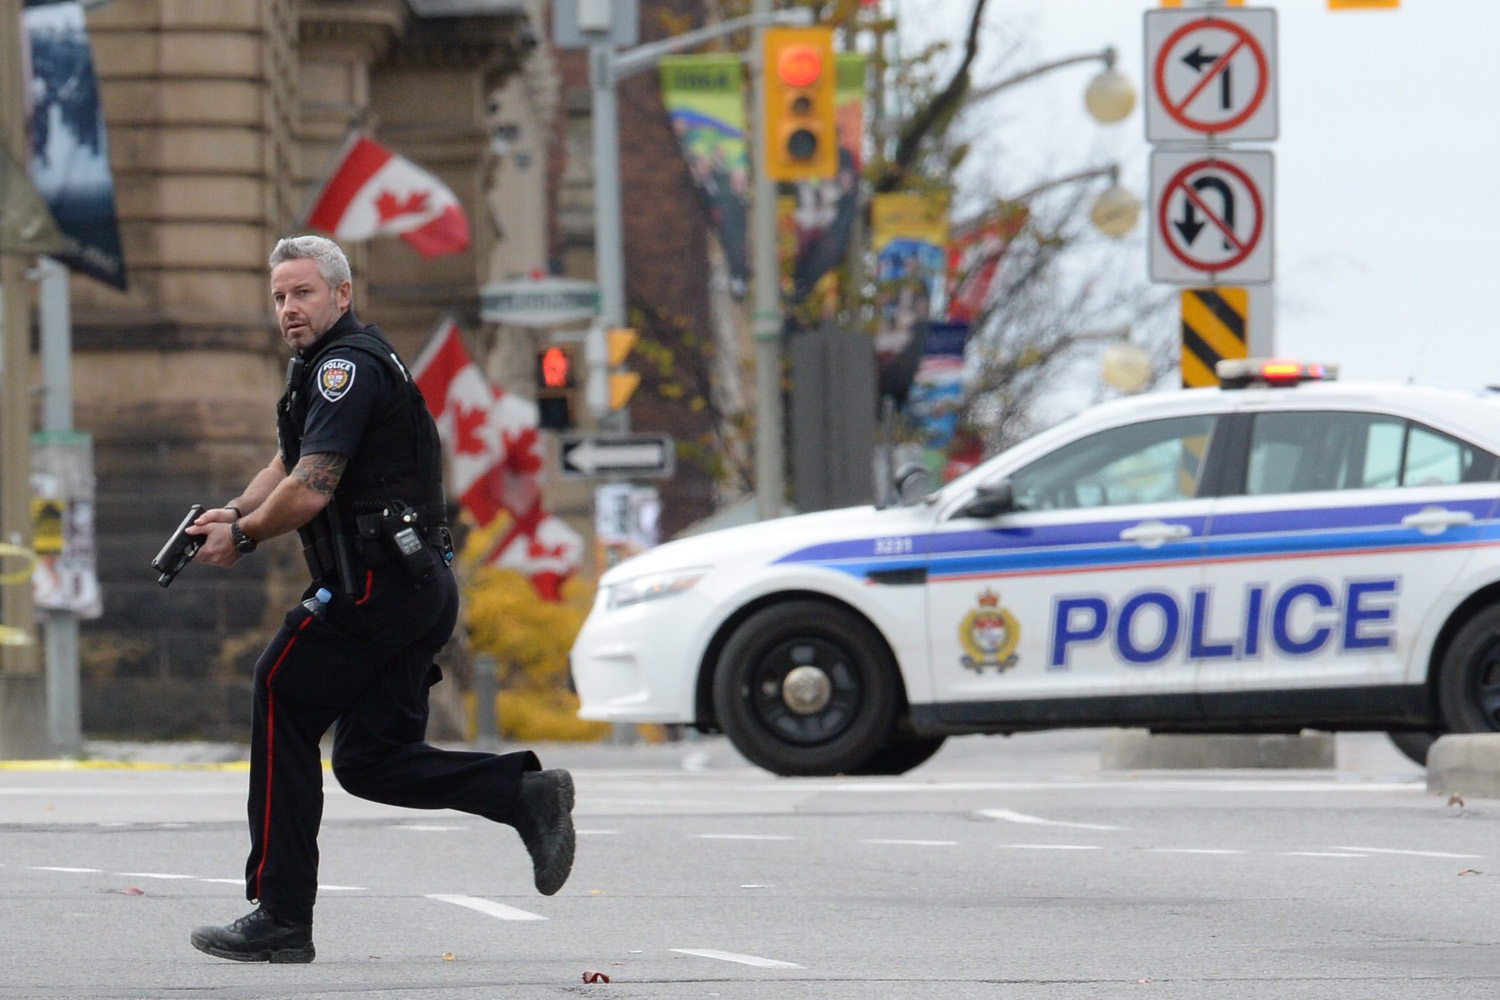 An Ottawa police officer runs with his weapon drawn outside Parliament Hill in Ottawa on Oct. 22, 2014.